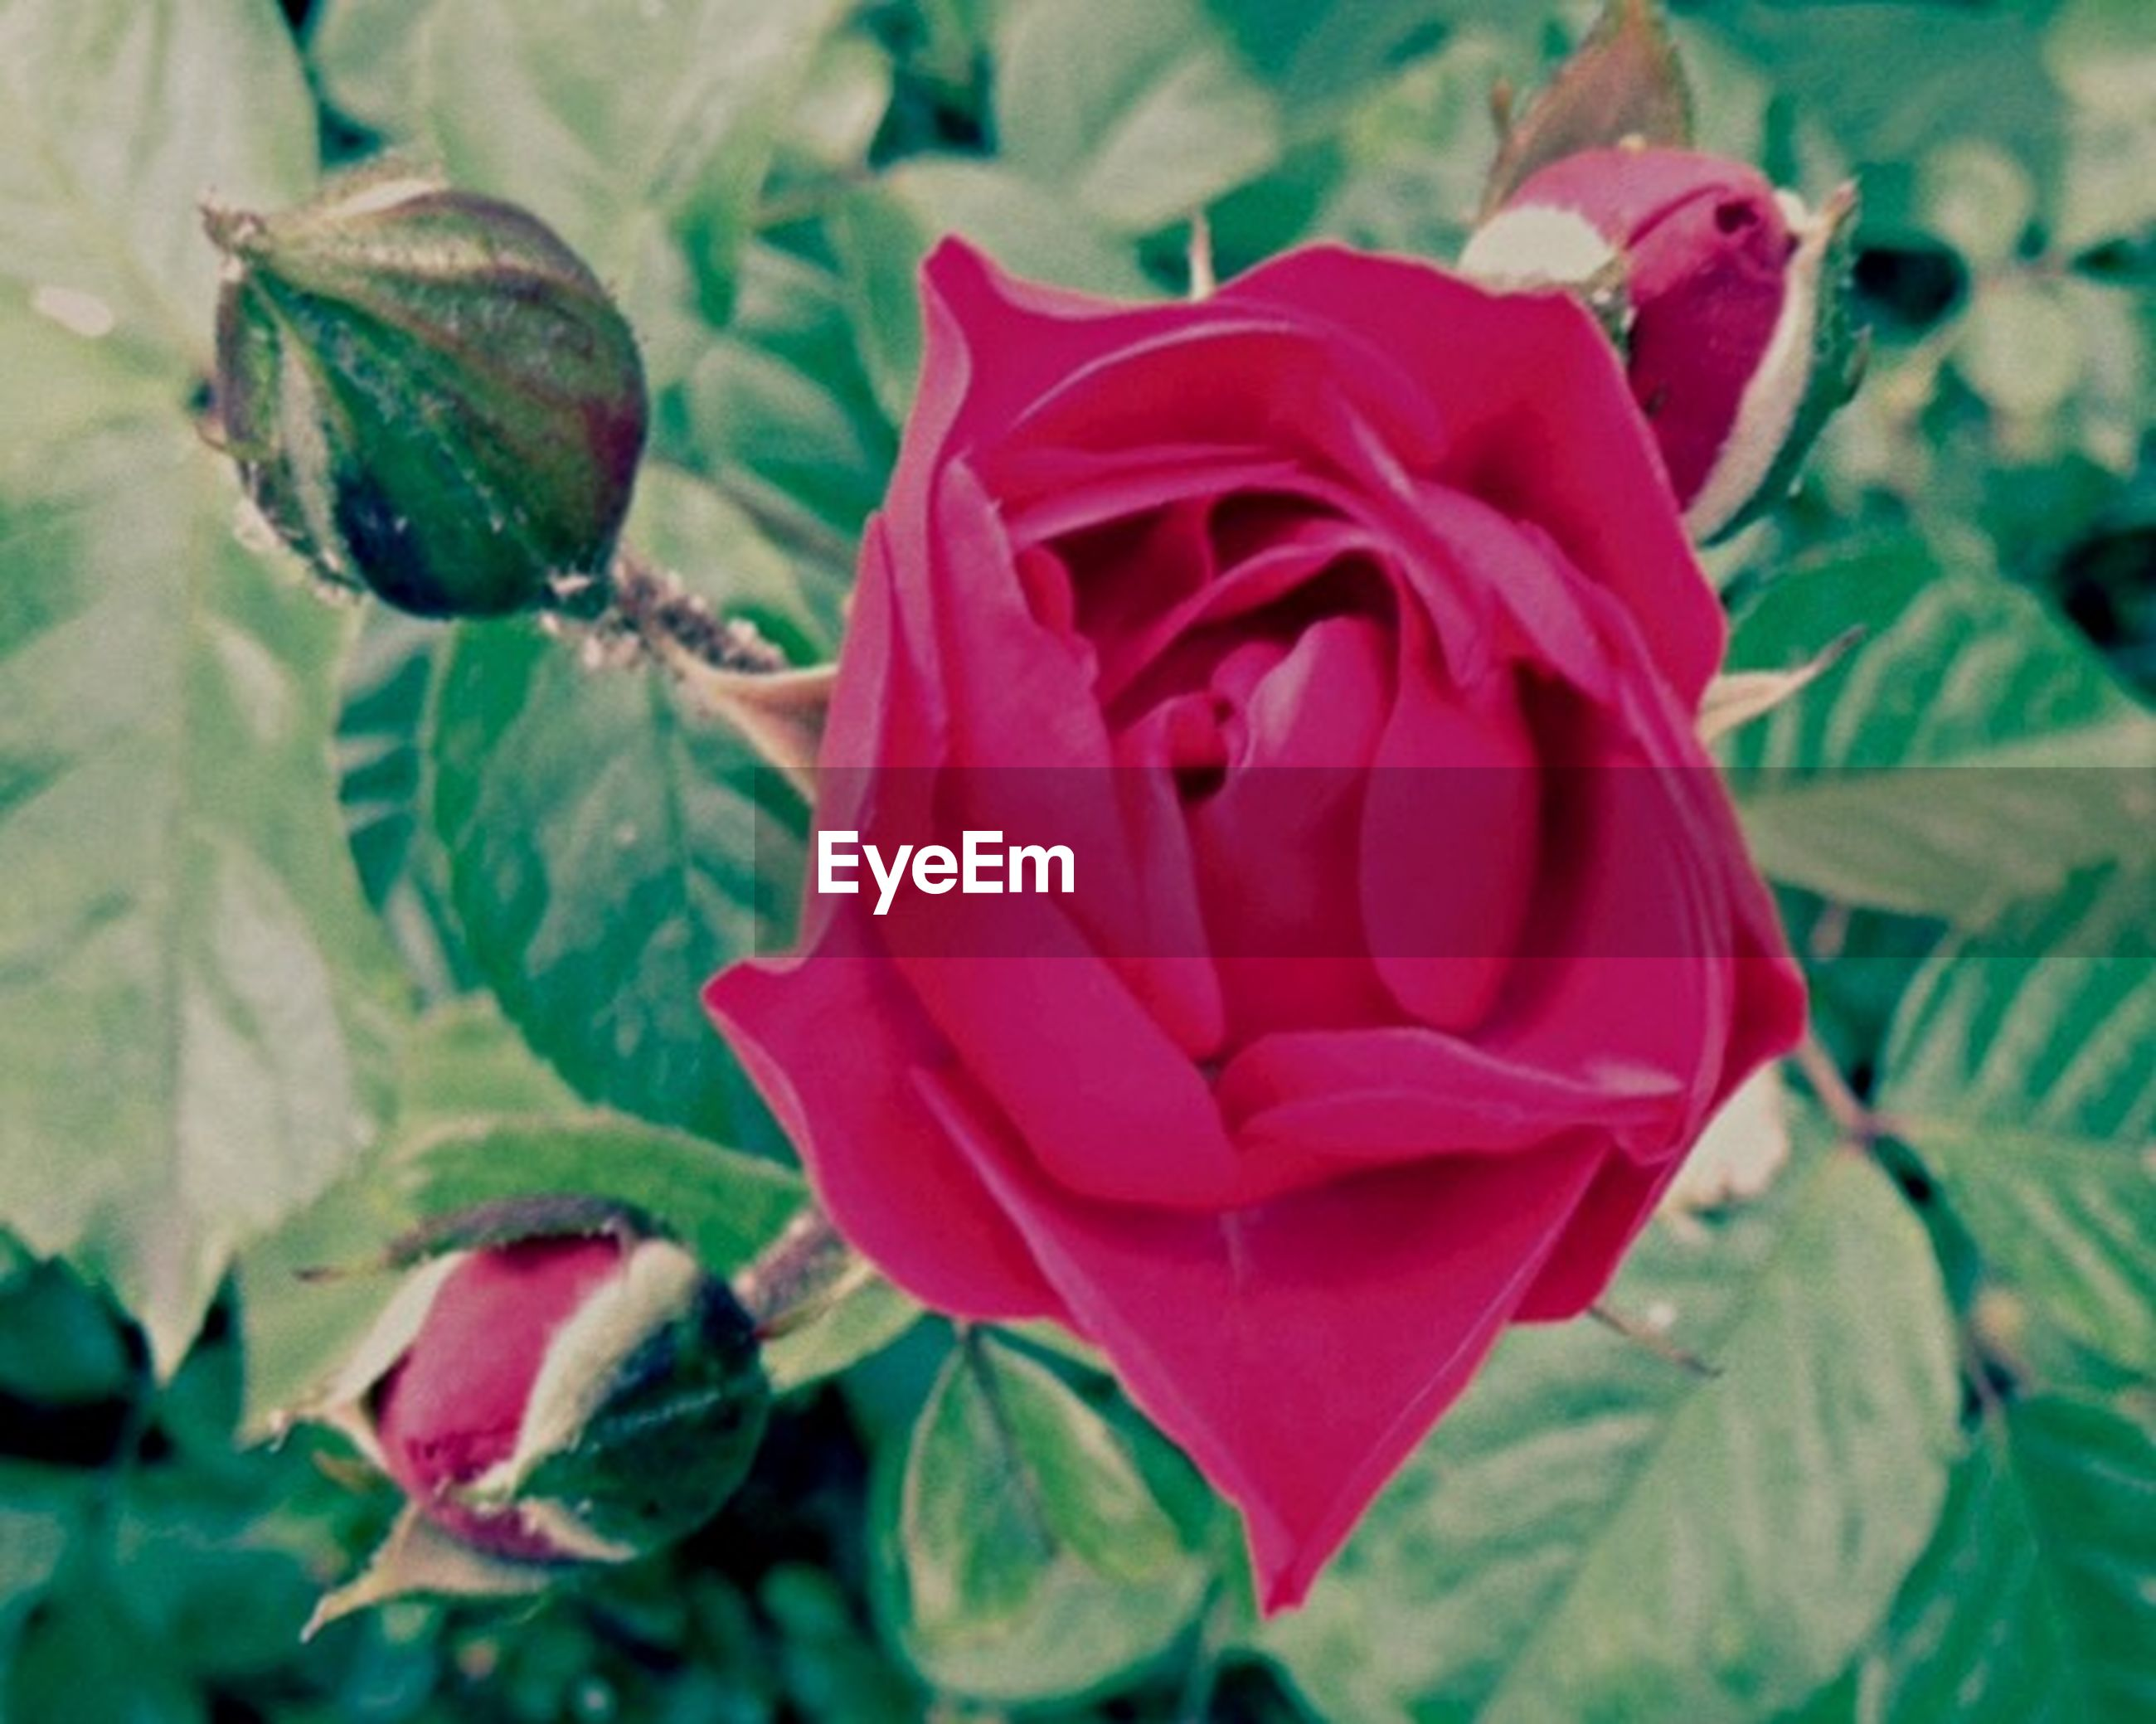 flower, petal, freshness, flower head, fragility, close-up, rose - flower, beauty in nature, growth, leaf, focus on foreground, plant, red, blooming, nature, single flower, pink color, rose, day, no people